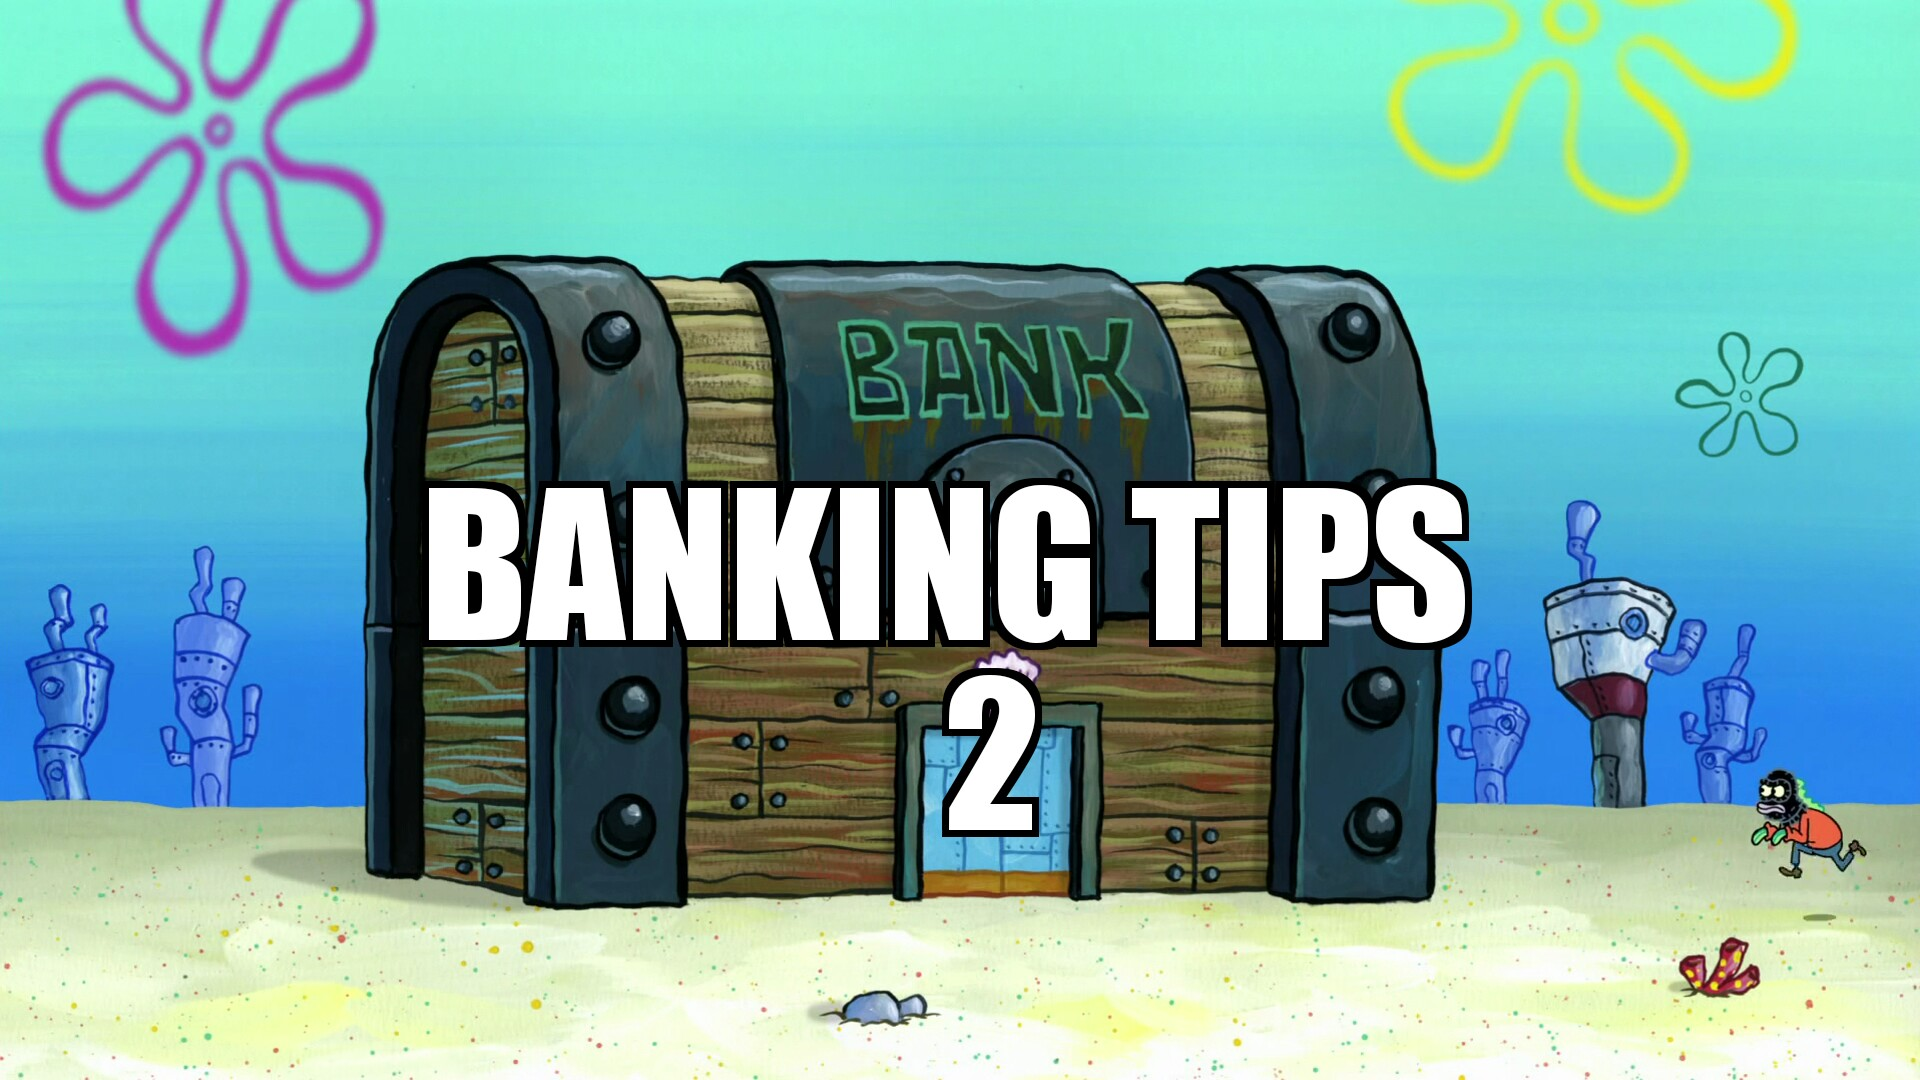 As promised, banking tips 2